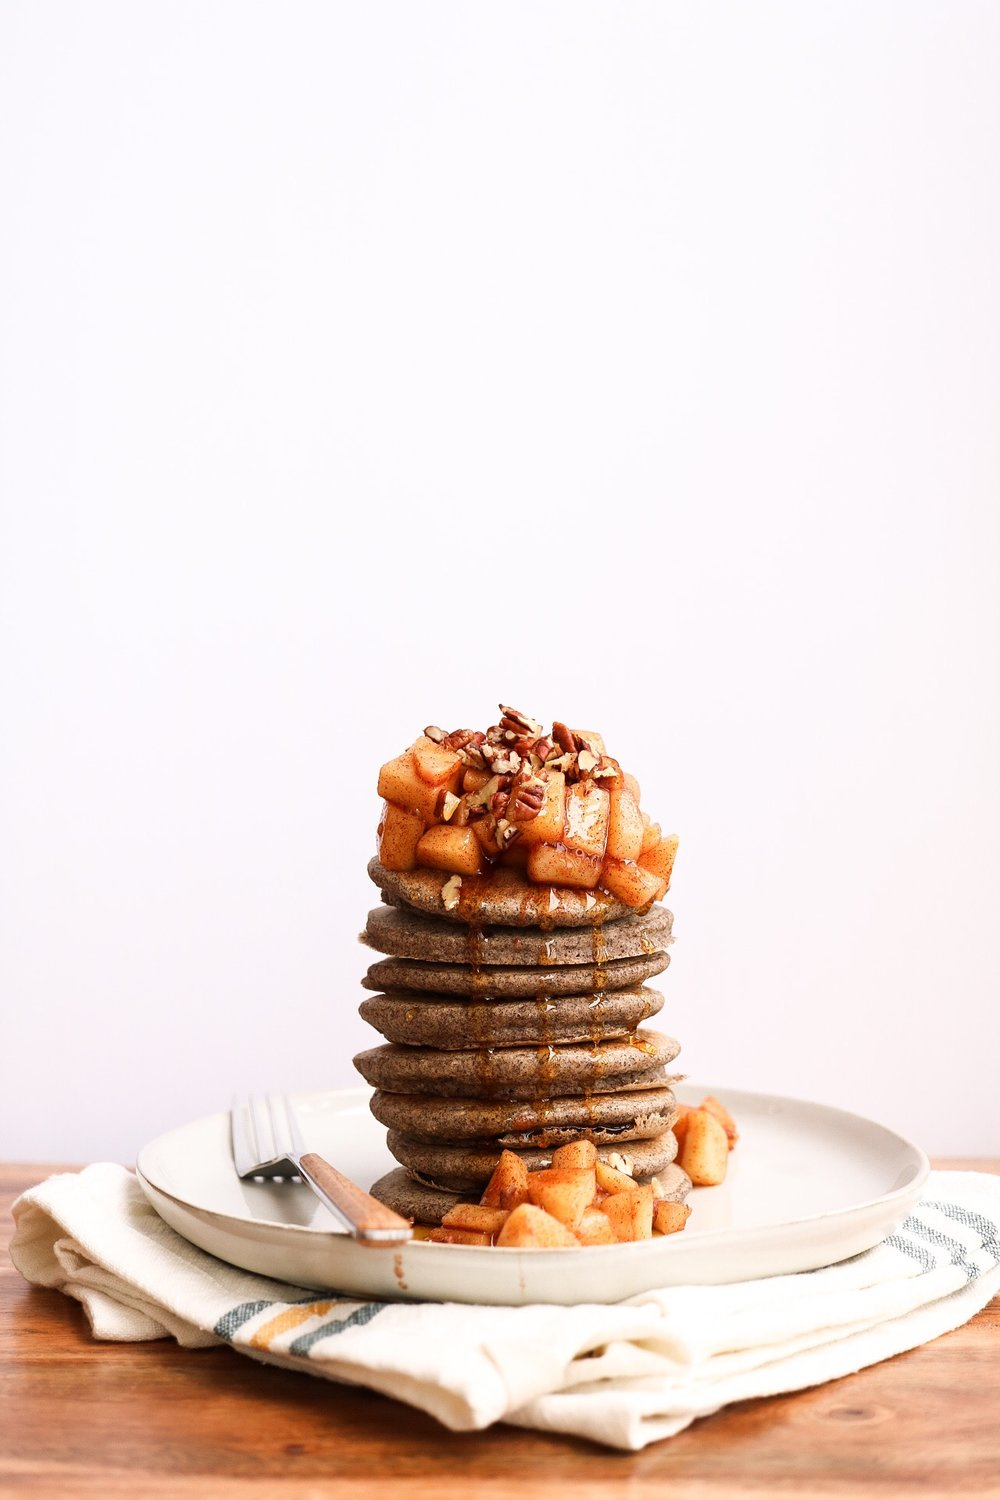 Apple Pie Buckwheat Pancakes - PANCAKE INGREDIENTS:1/2 cup buckwheat flour1/2 oats1/2 ripe banana1 cup water1/2 tsp cinnamon1 Tbsp apple cider vinegar1 Tbsp baking powder1 Tbsp flaxseedAPPLE TOPPING:1 apple, chopped1 Tbsp maple syrup1/4 cup waterINSTRUCTIONS:For the pancakes, combine all of the ingredients in a. food processor and blend until smooth - let the pancake batter sit for about 10 minutes. Then, preheat your pan at medium heat for about 1-2 minutes, adding a teaspoon of coconut oil to the pan if needed. Then, just cook the pancakes as you would normally! As for the apple topping, just add the ingredients to a small saucepan and bring it all to a simmer - let the apple mix cook for about 3 minutes, until the apples are soft and sticky.